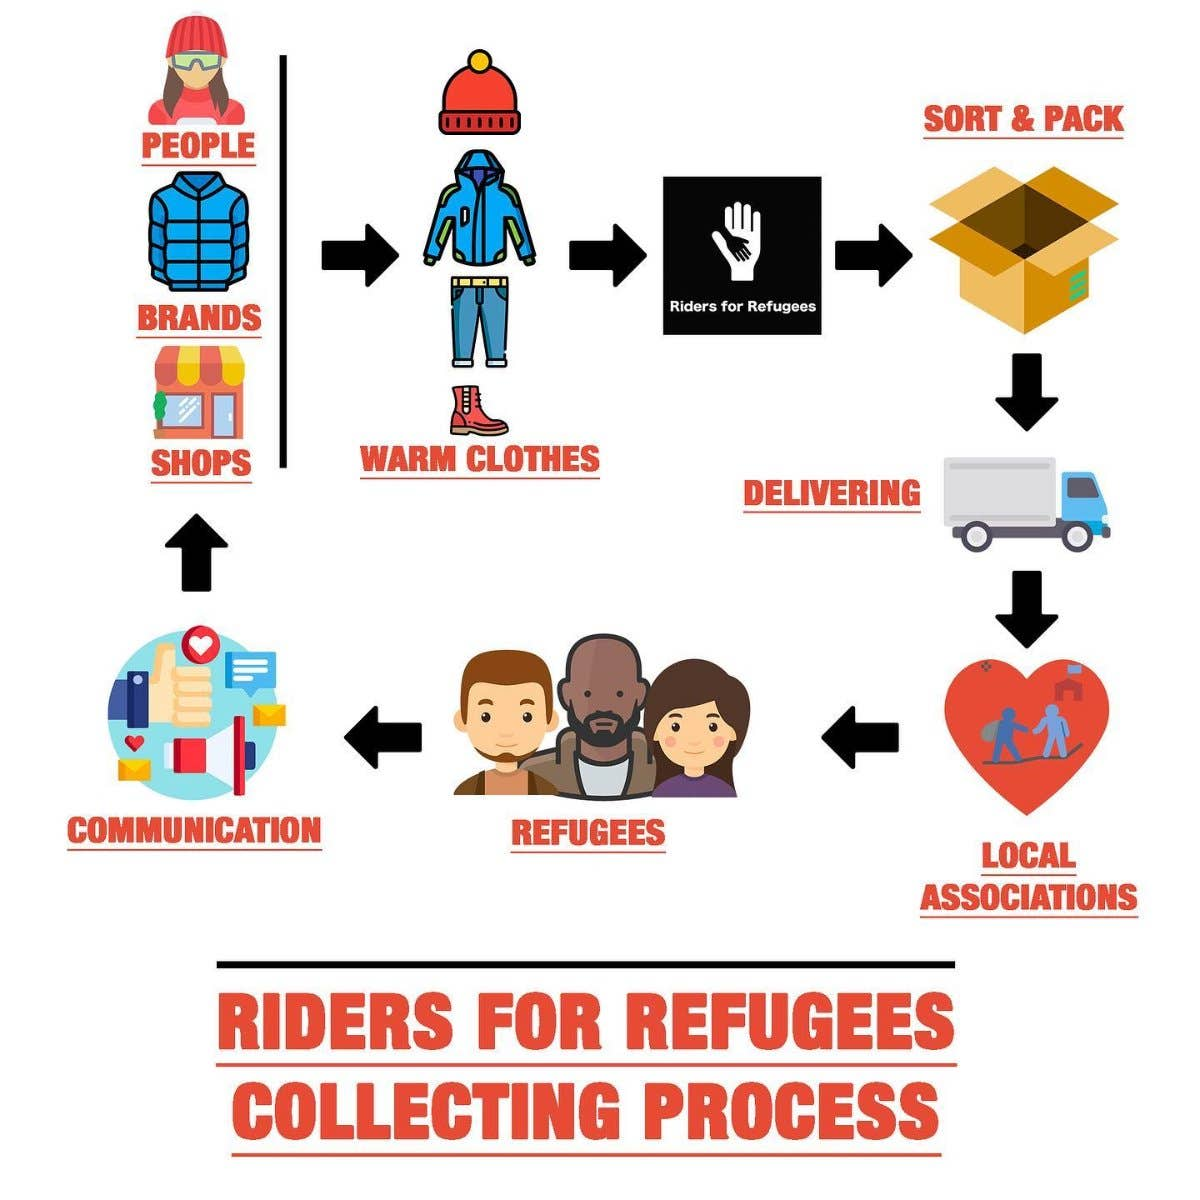 riderforrefugees-processus